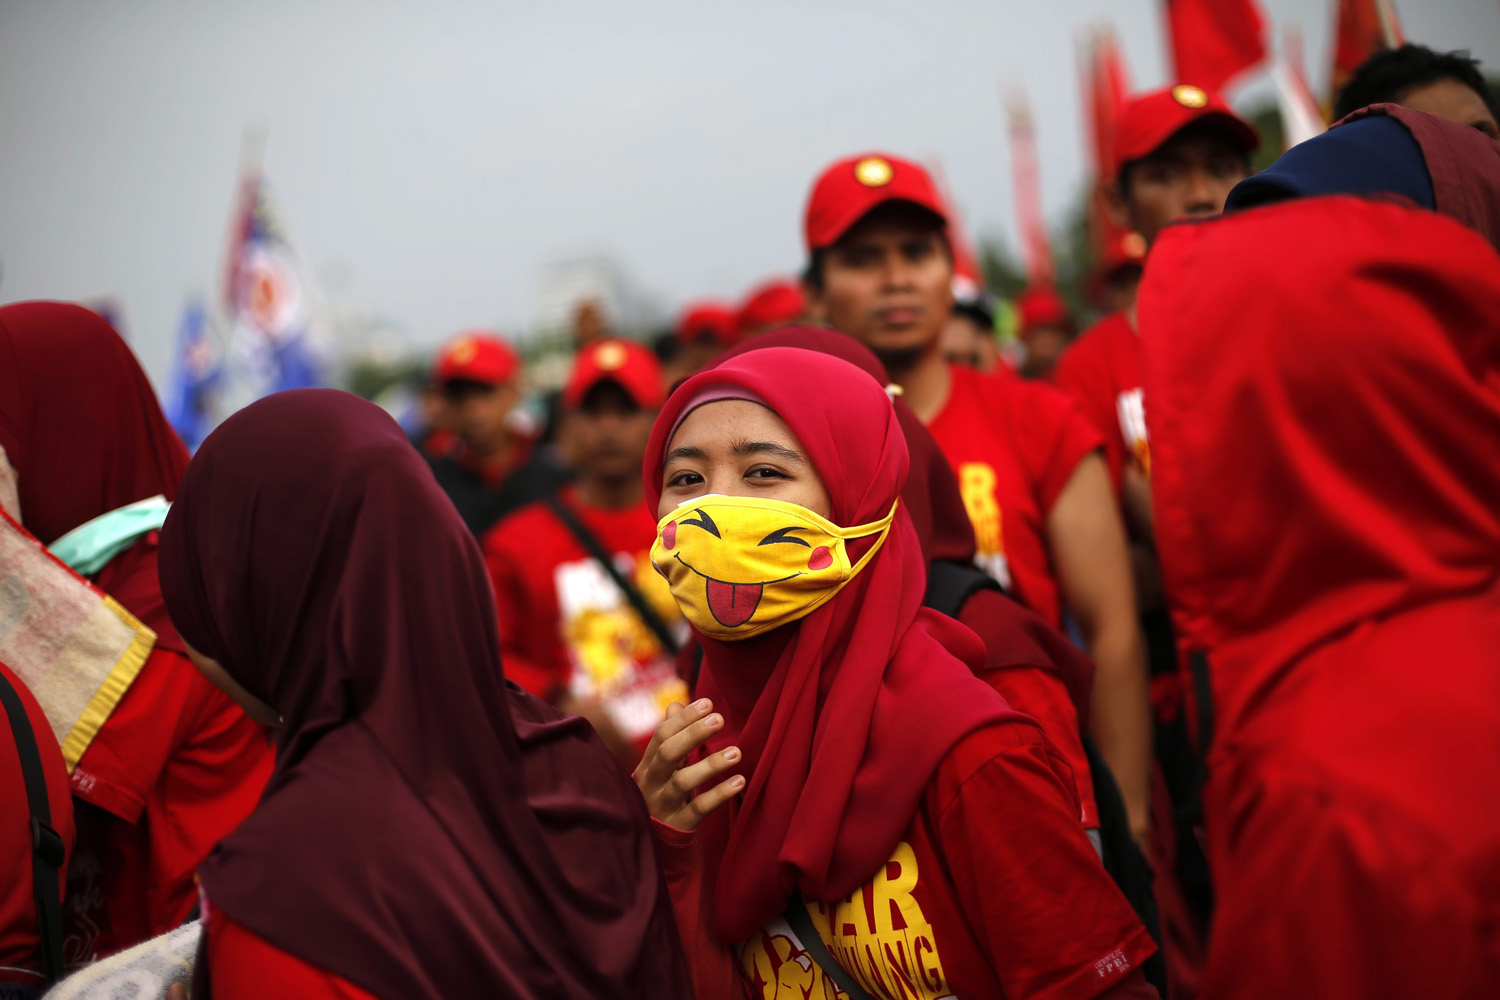 May 1, 2014. An Indonesian worker wears a pikachu Japanese character mask during a rally to mark the International Labor Day outside the presidential palace in Jakarta, Indonesia.